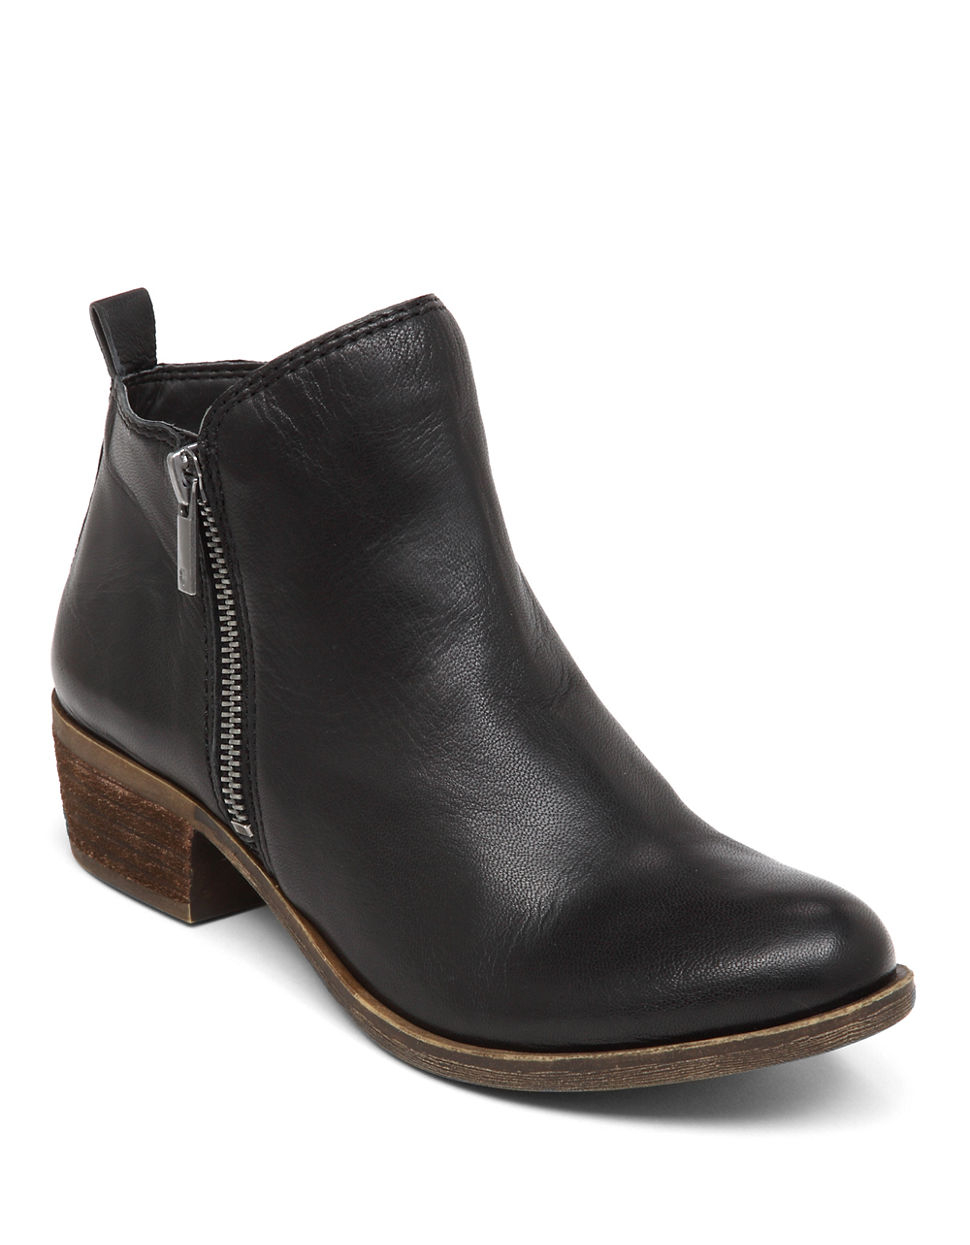 Lucky brand Basel Leather Ankle Boots in Black